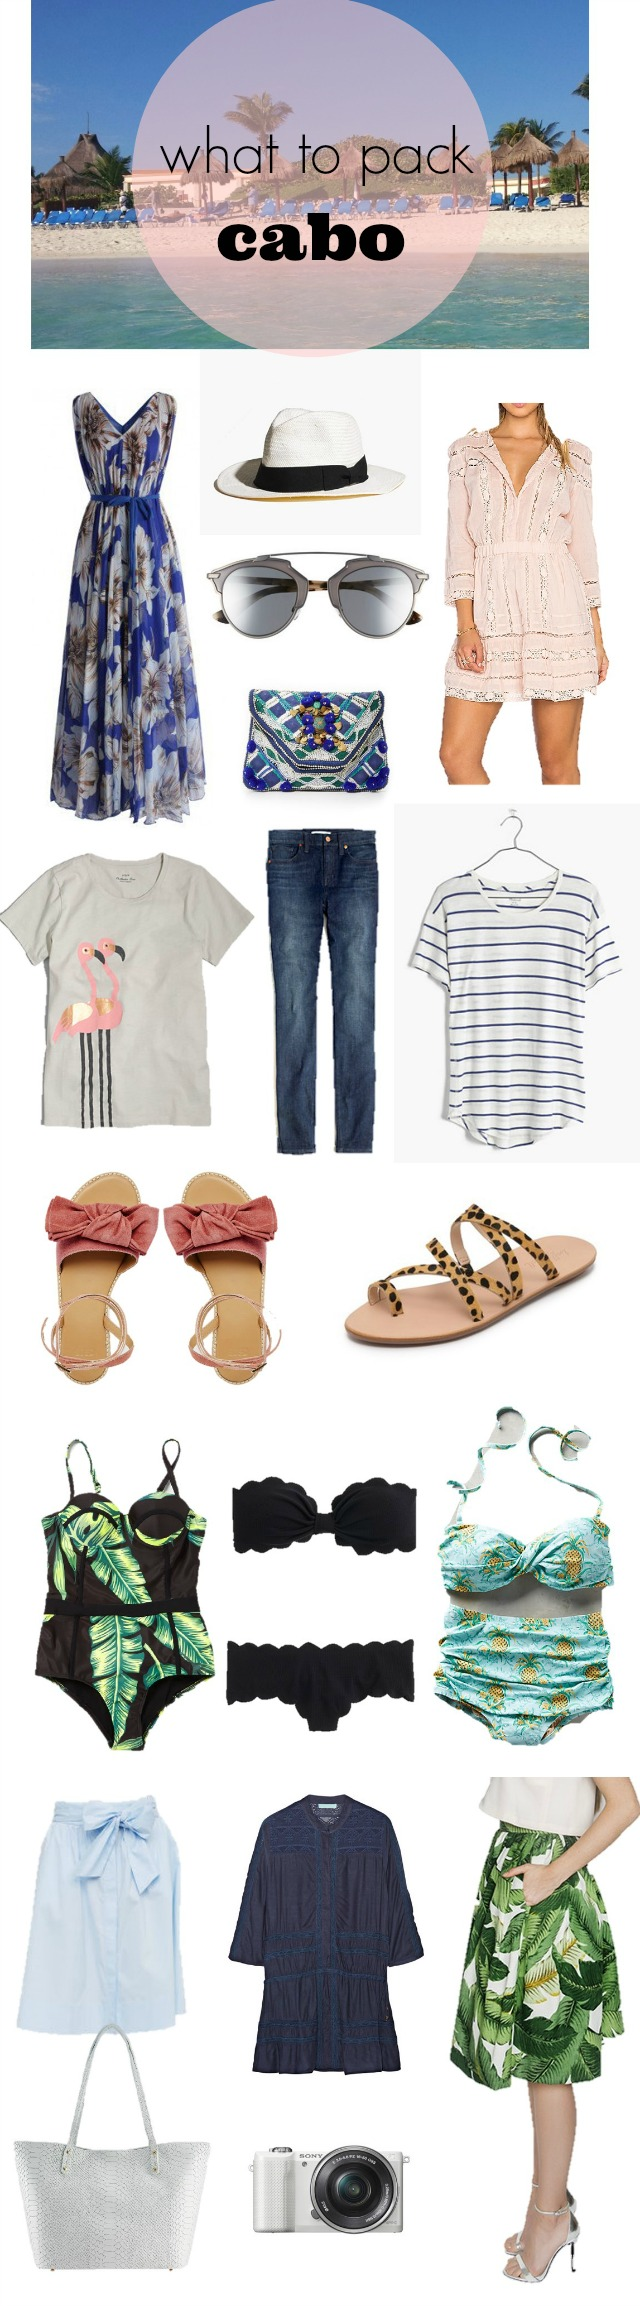 what to pack for los cabos